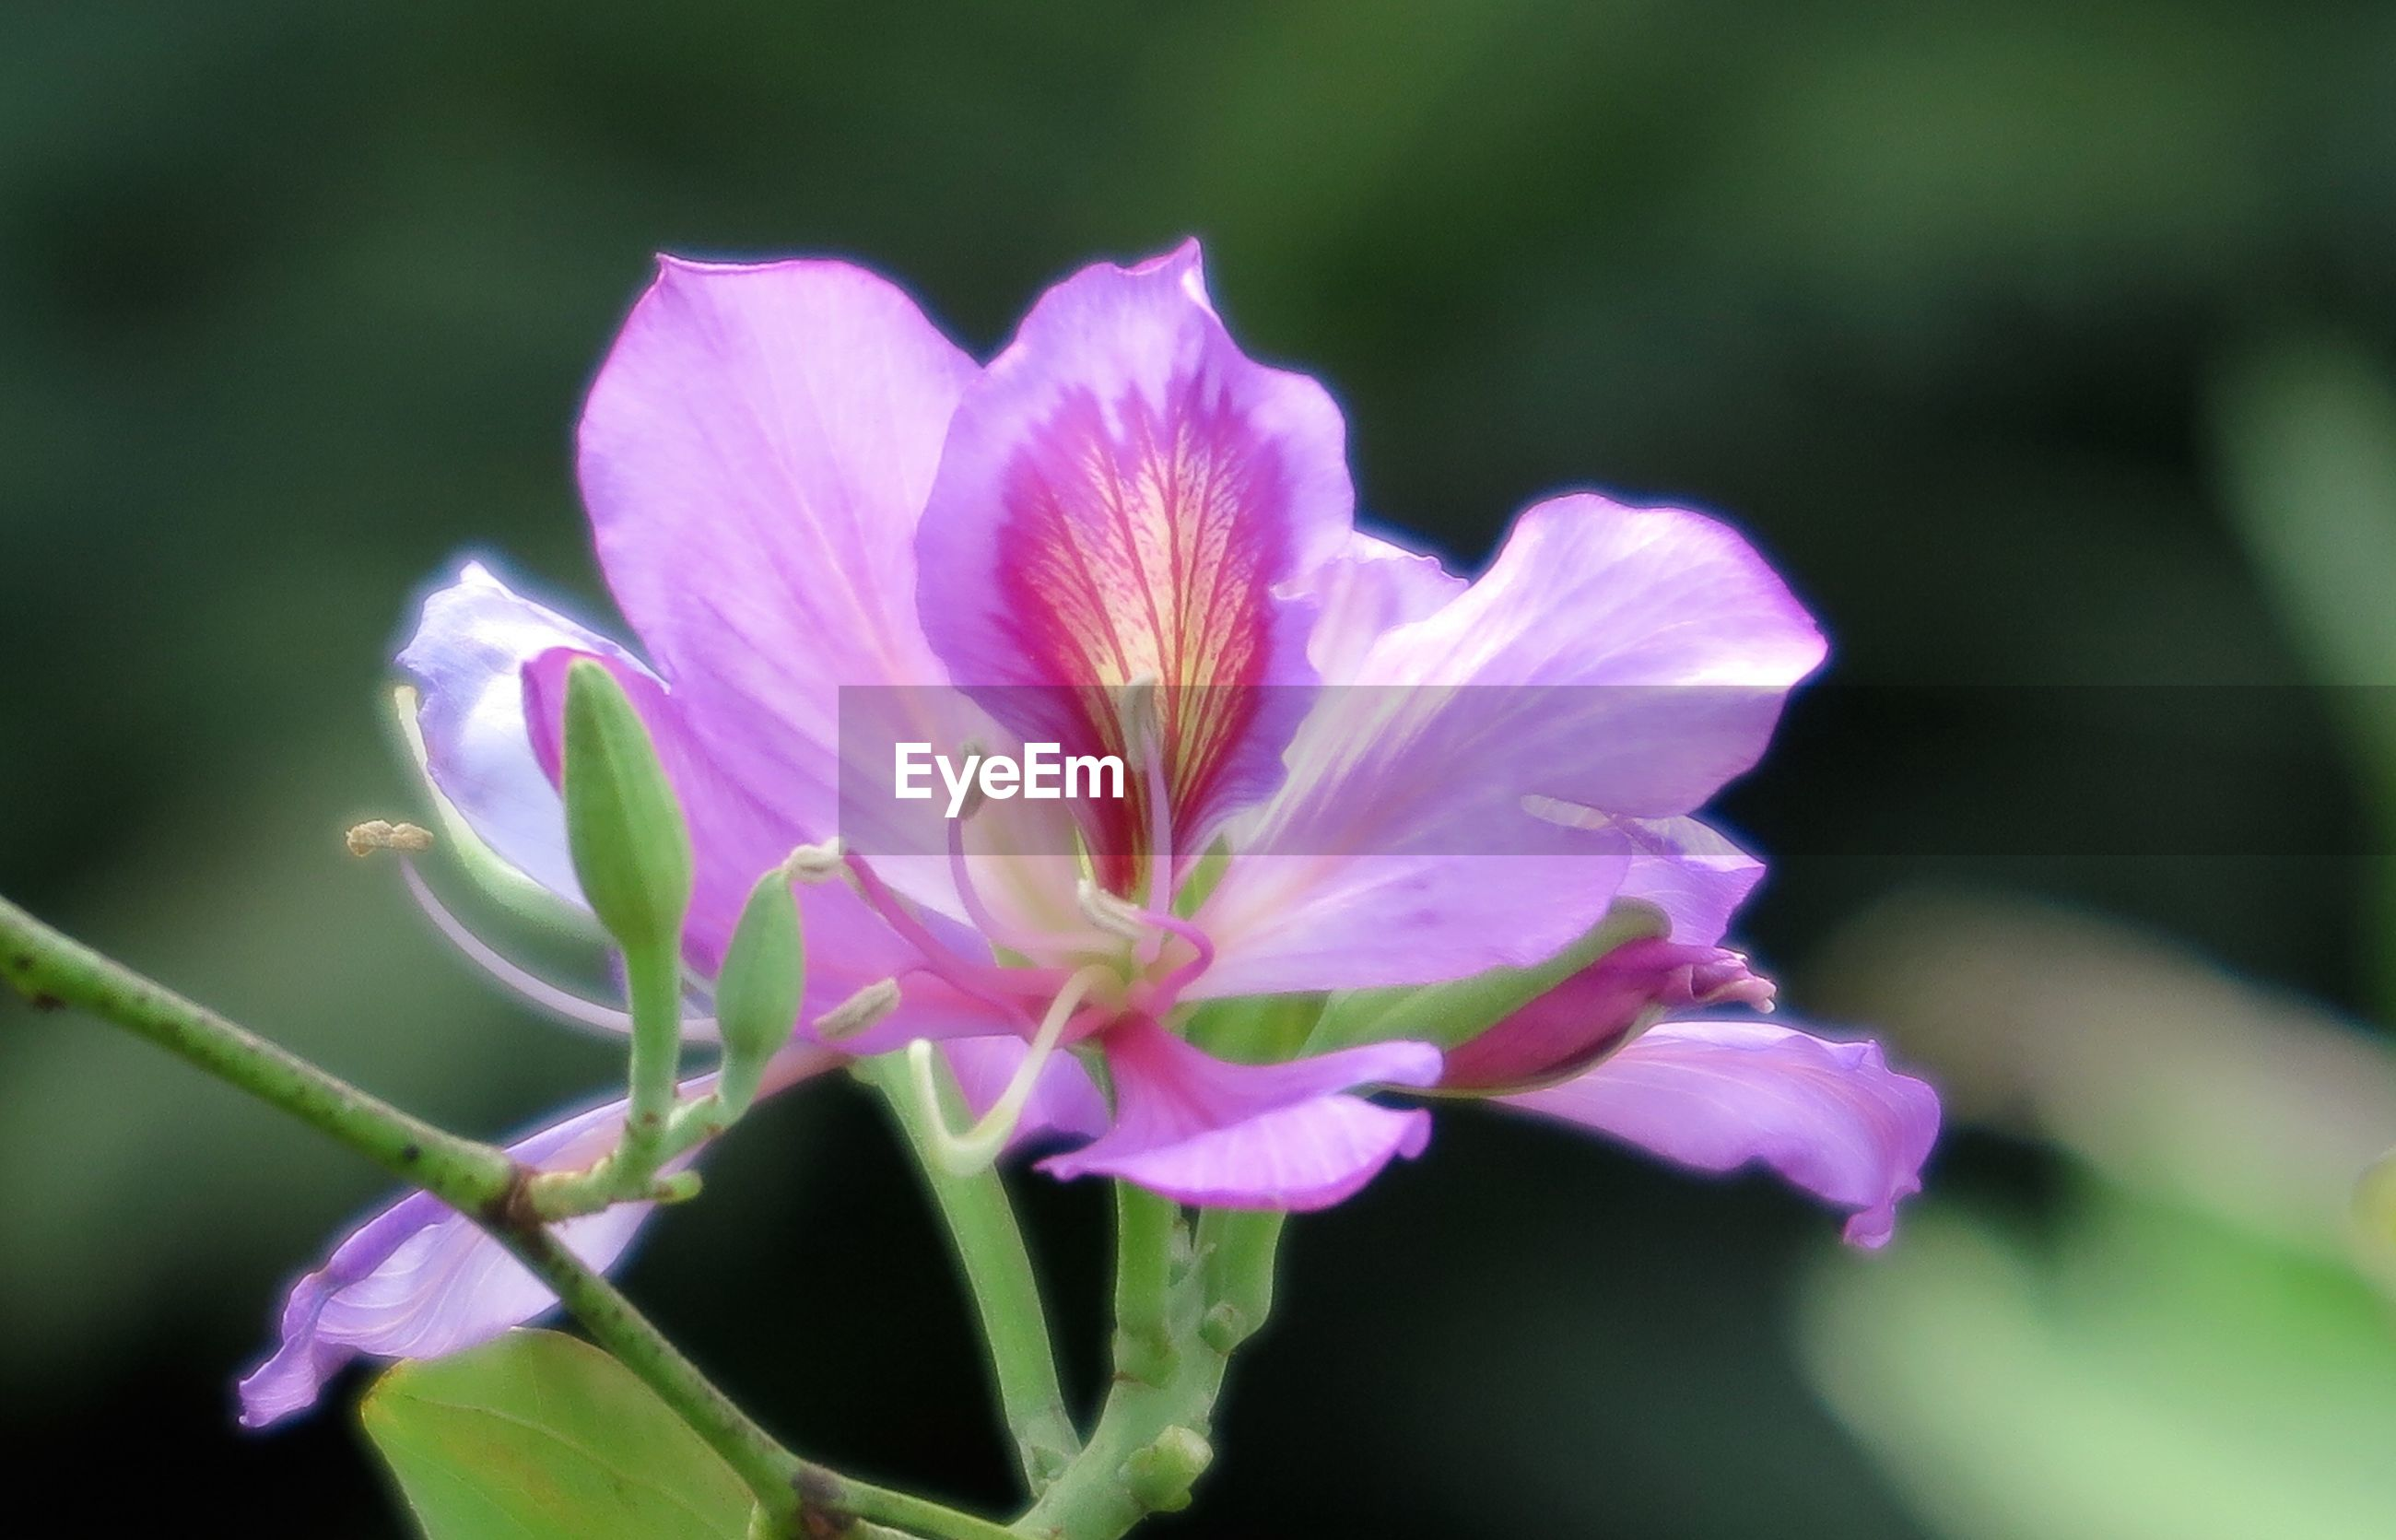 flower, nature, petal, fragility, growth, beauty in nature, plant, freshness, flower head, no people, outdoors, close-up, blooming, day